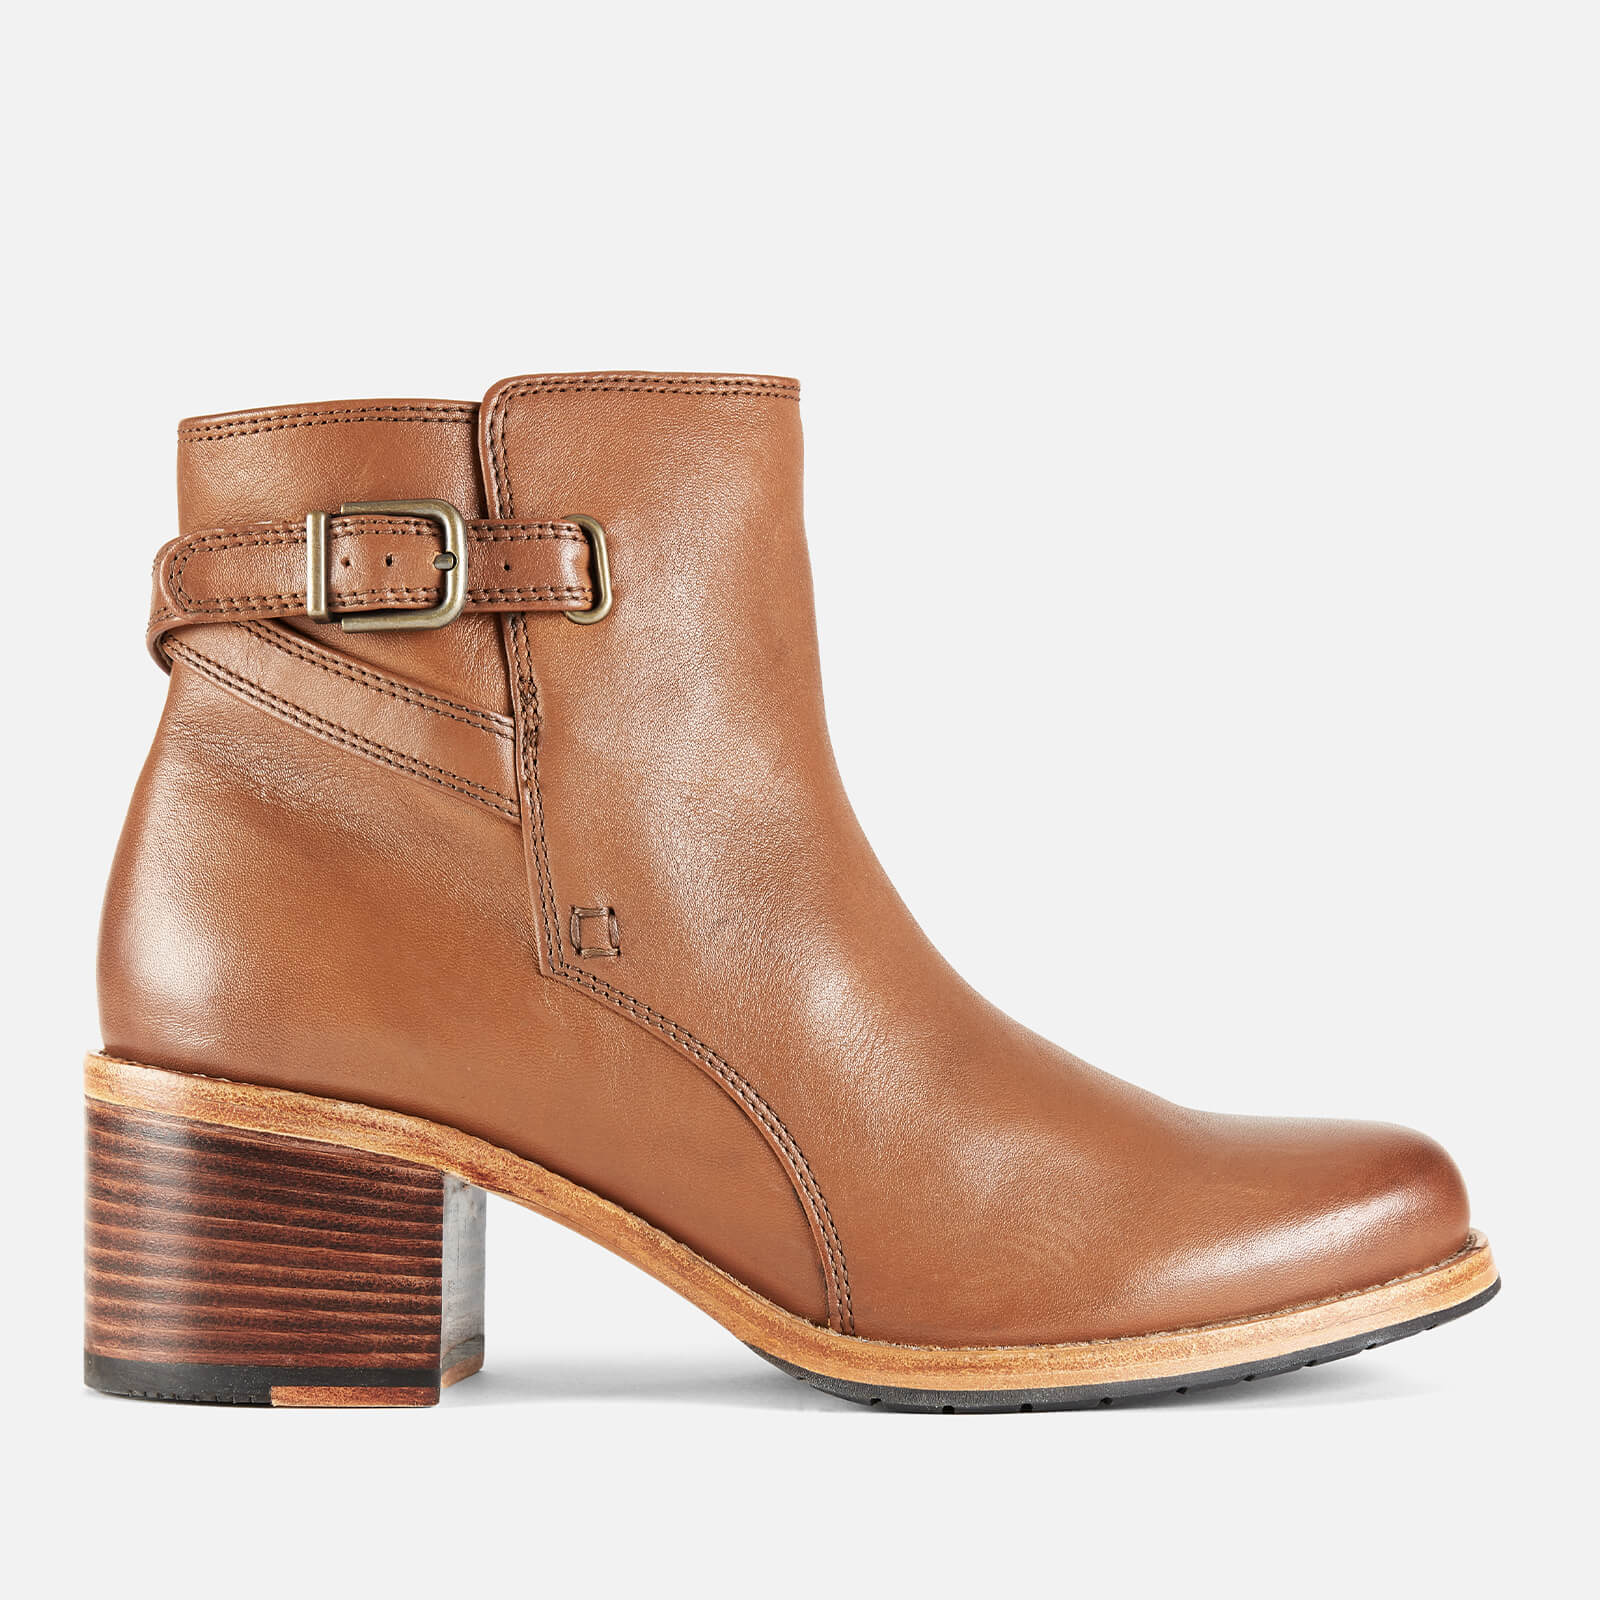 womens tan ankle boots size 2.5